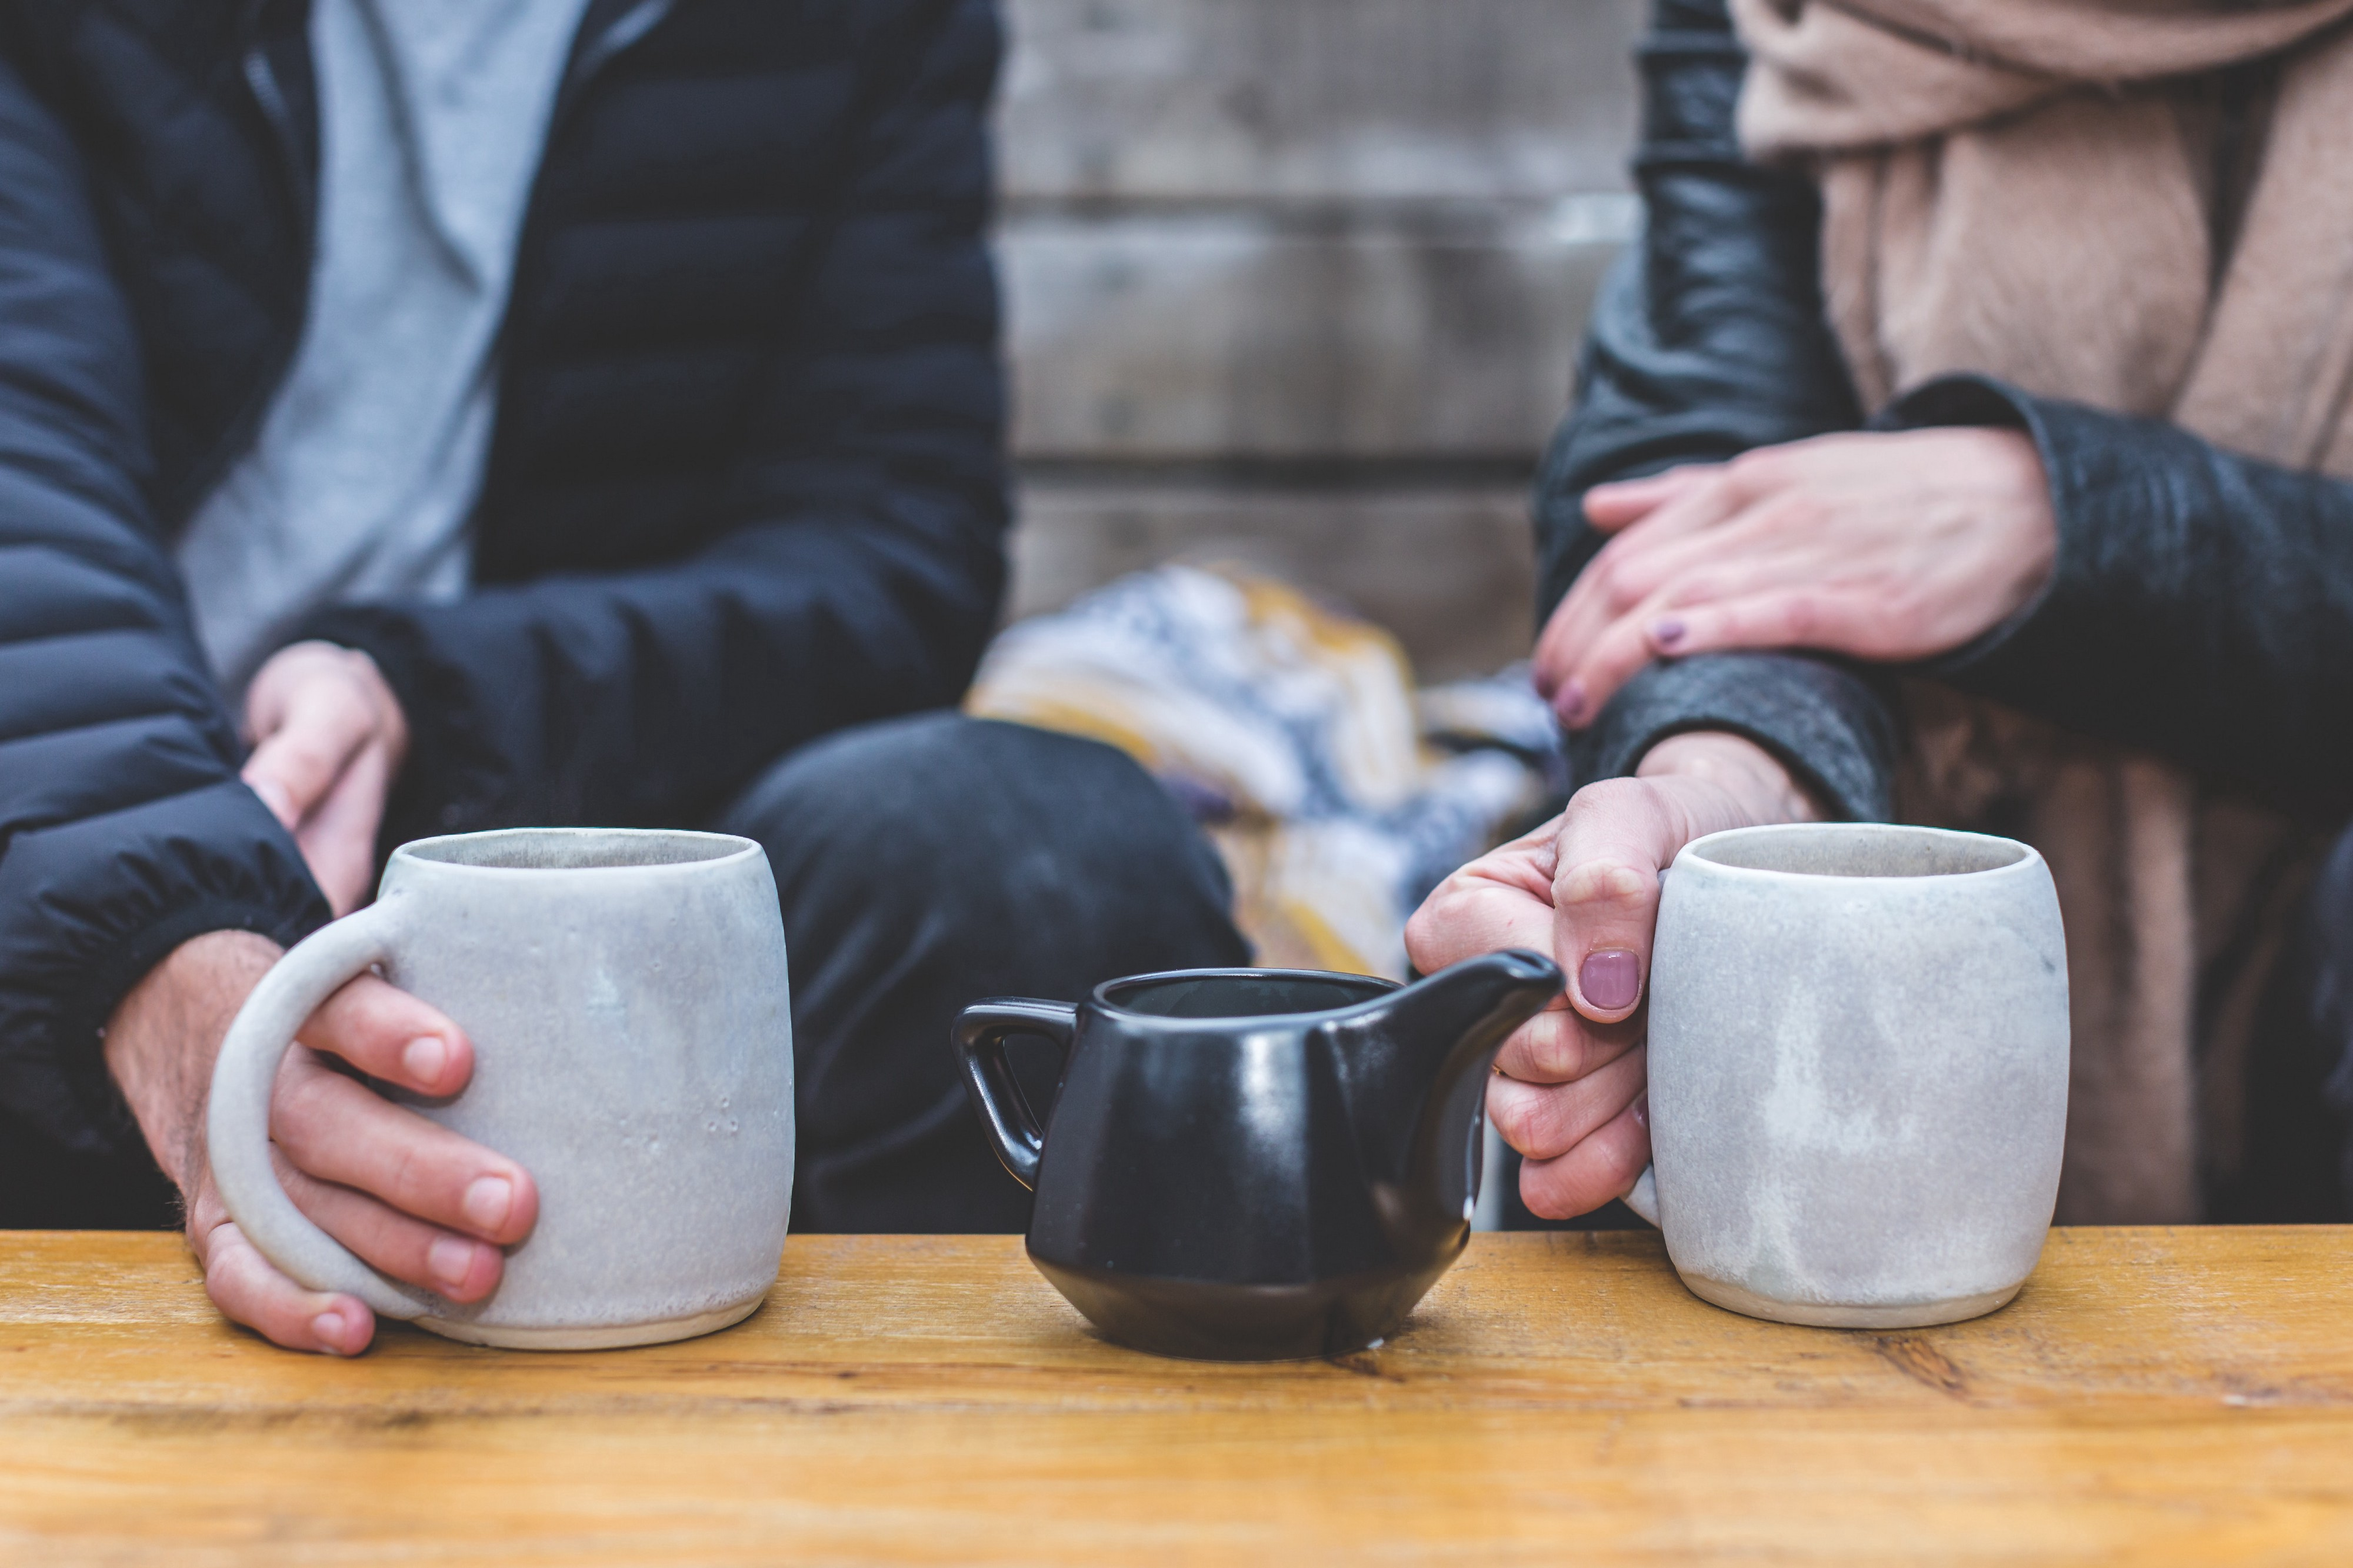 Two people wearing scarves and coats on a date, with a tea pot between two mugs of tea that they are holding.